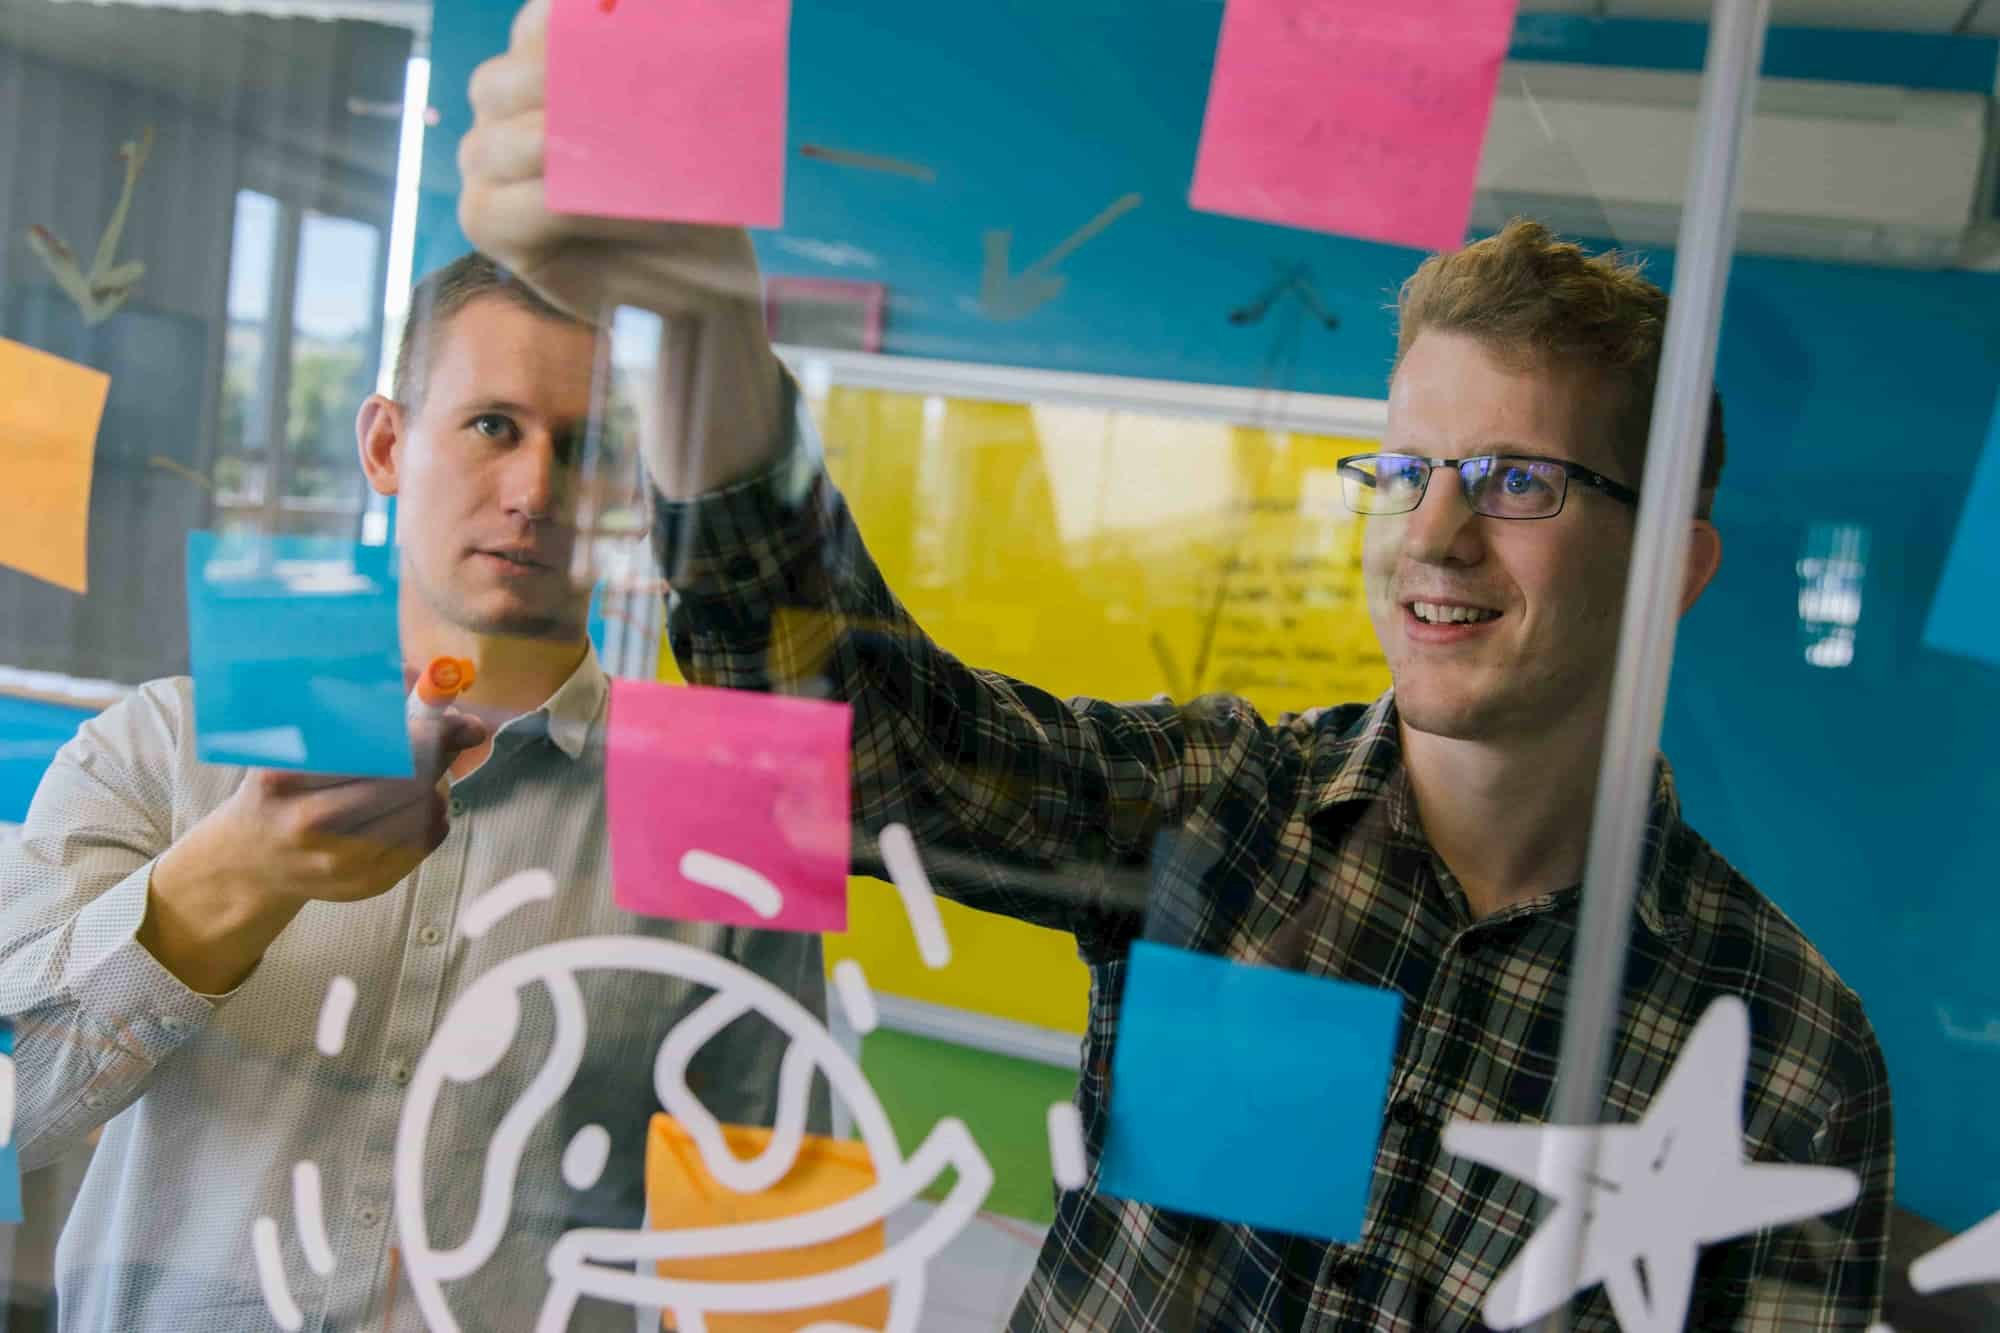 Post it note discovery on a glass wall